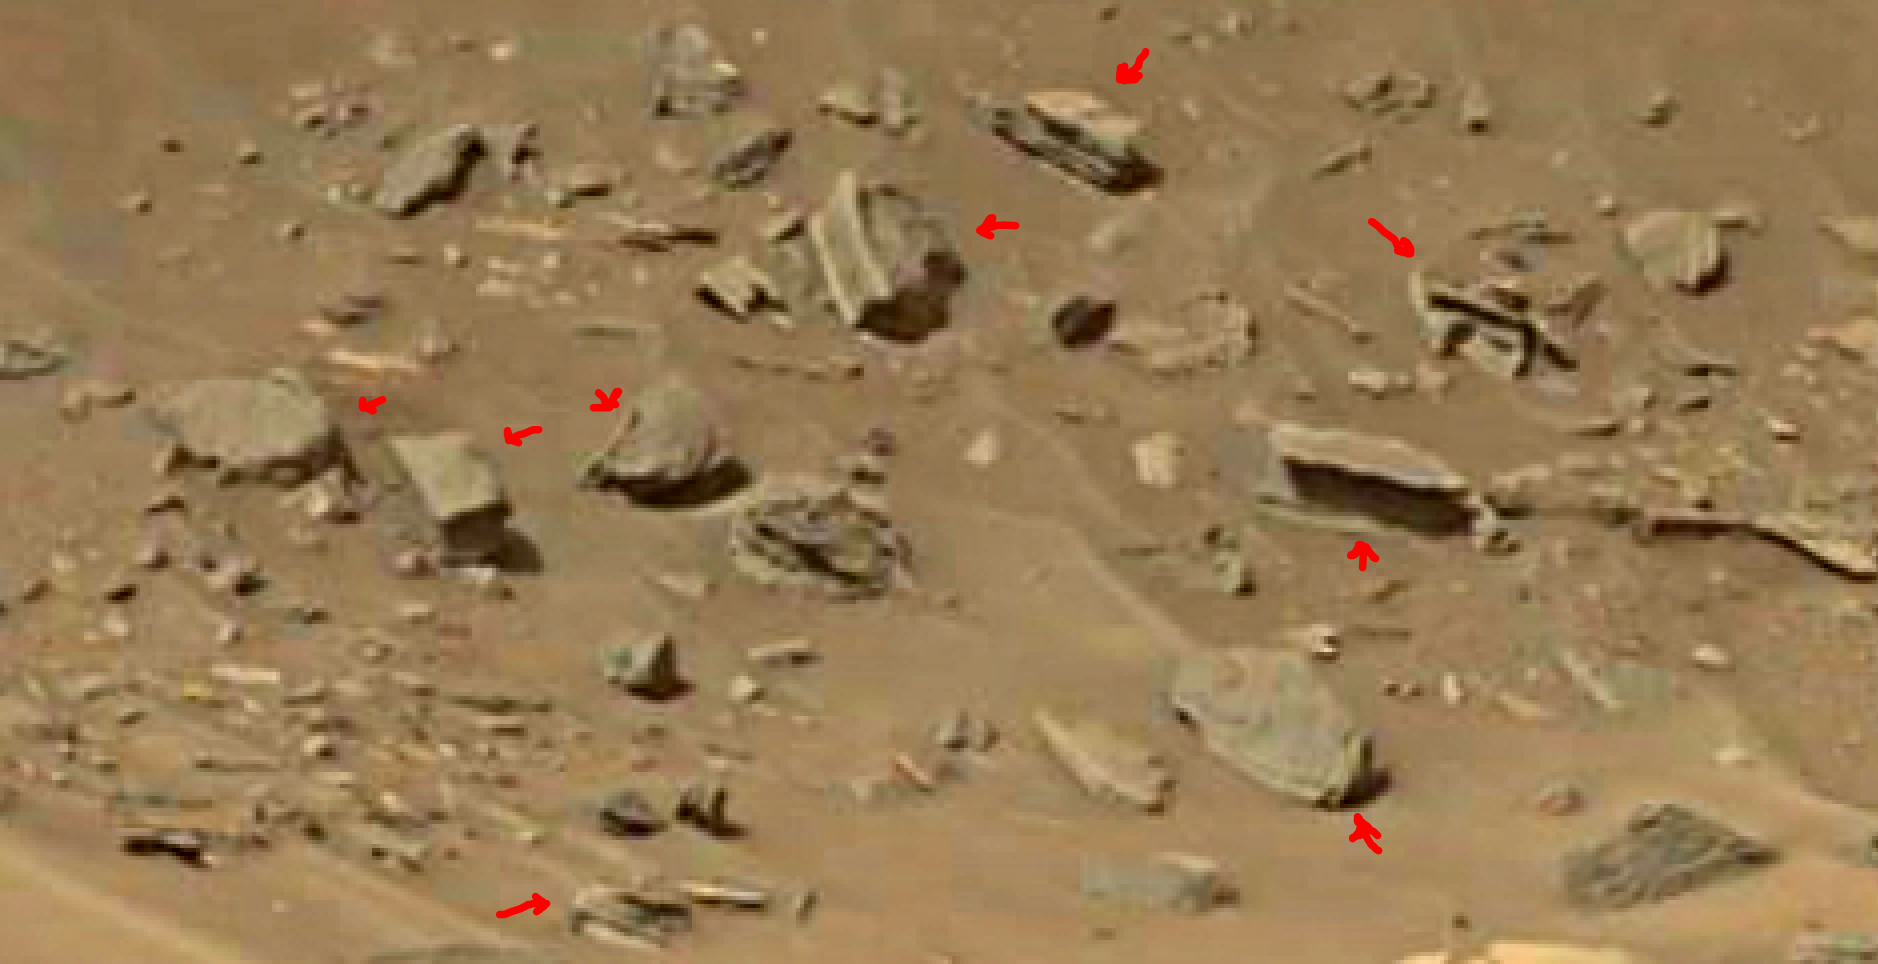 mars-sol-1451-anomaly-artifacts-2a-was-life-on-mars